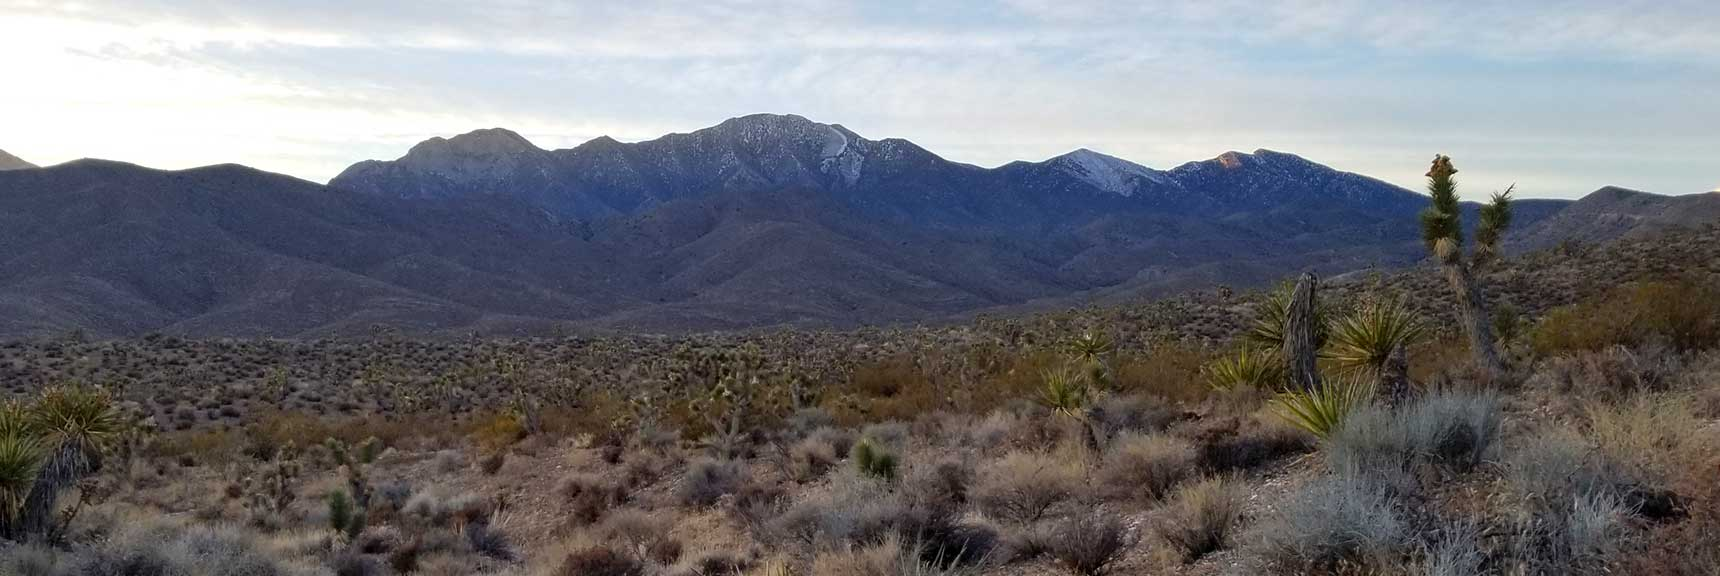 La Madre Mountain Viewed from Lower Harris Springs Road, La Madre Mountain Wilderness from the North, Nevada